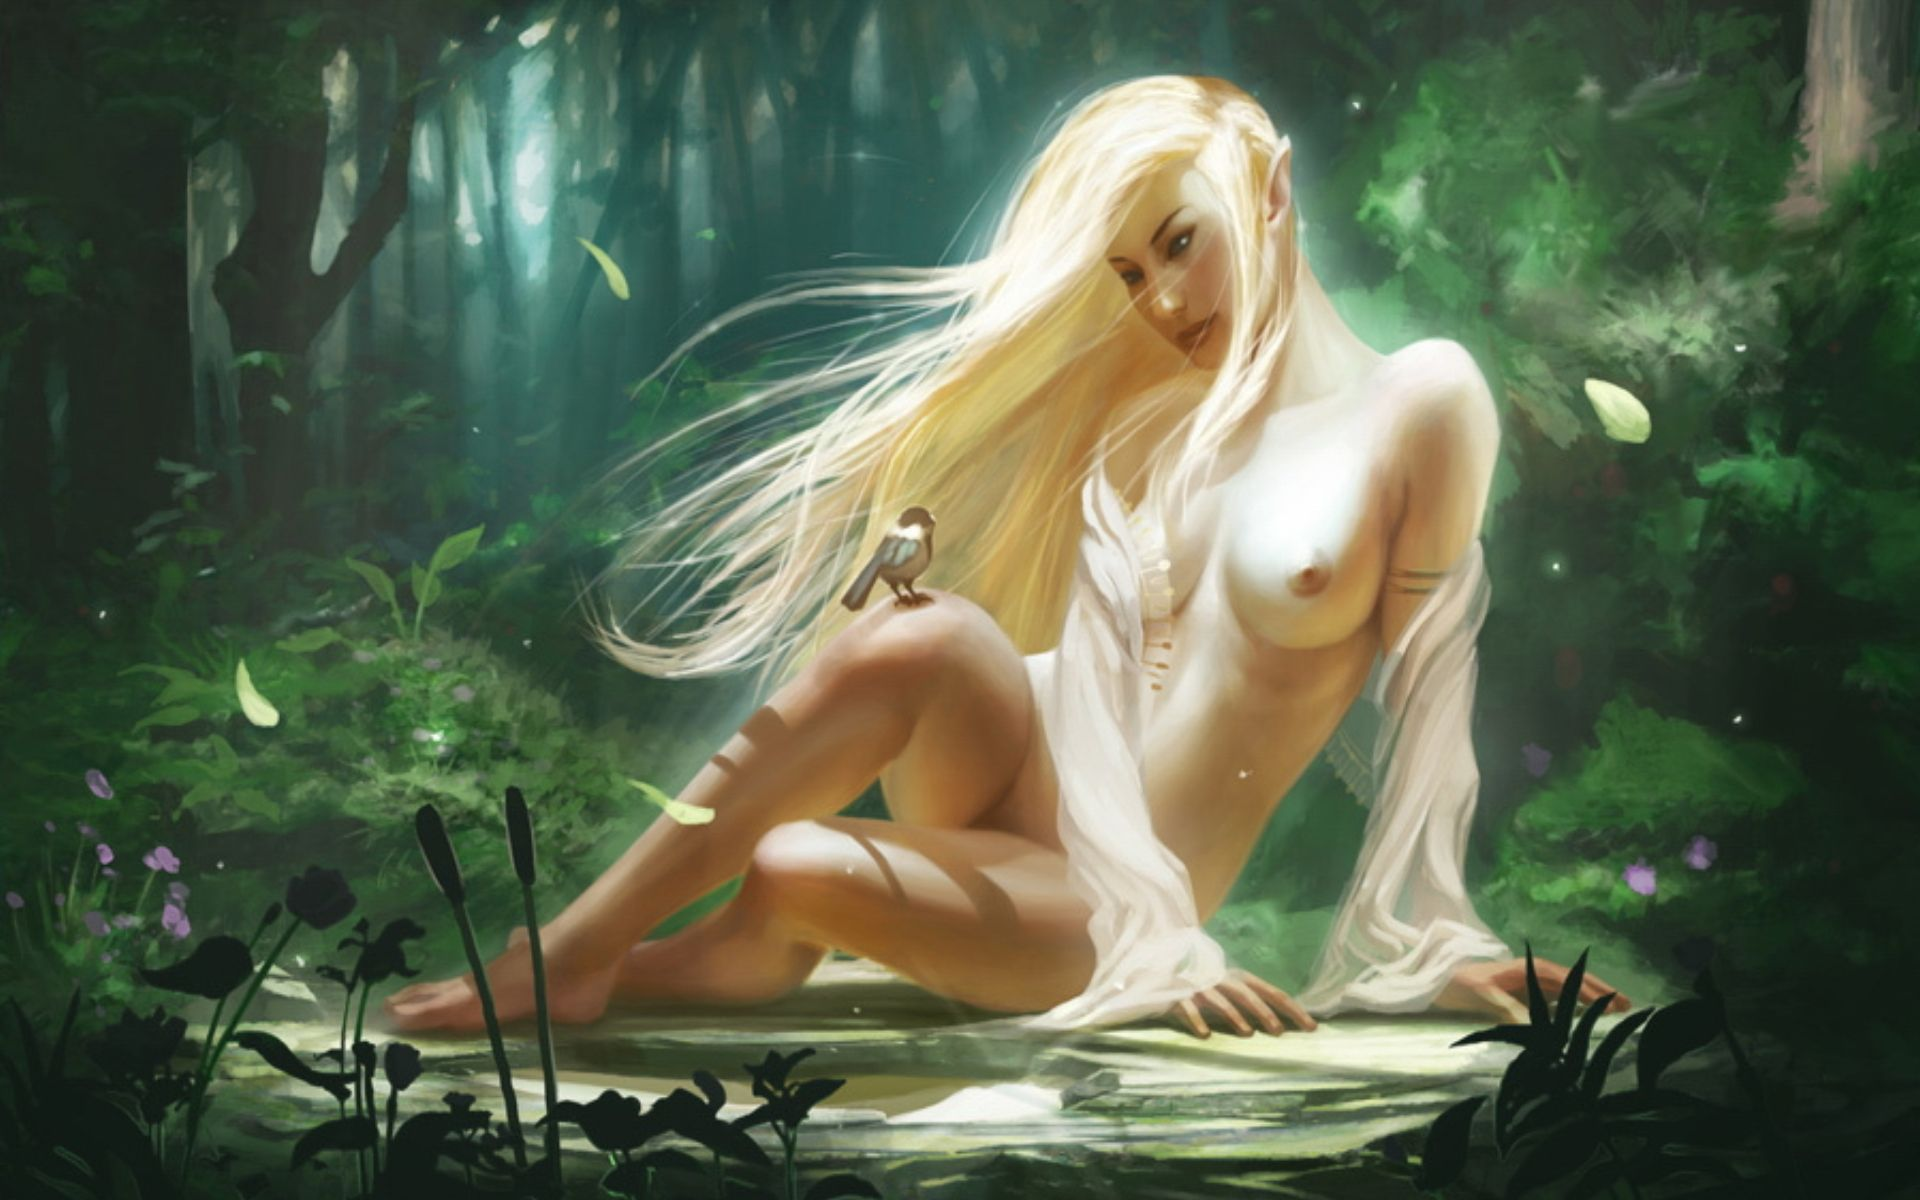 Free naked elves fantasy wallpapers naked scenes